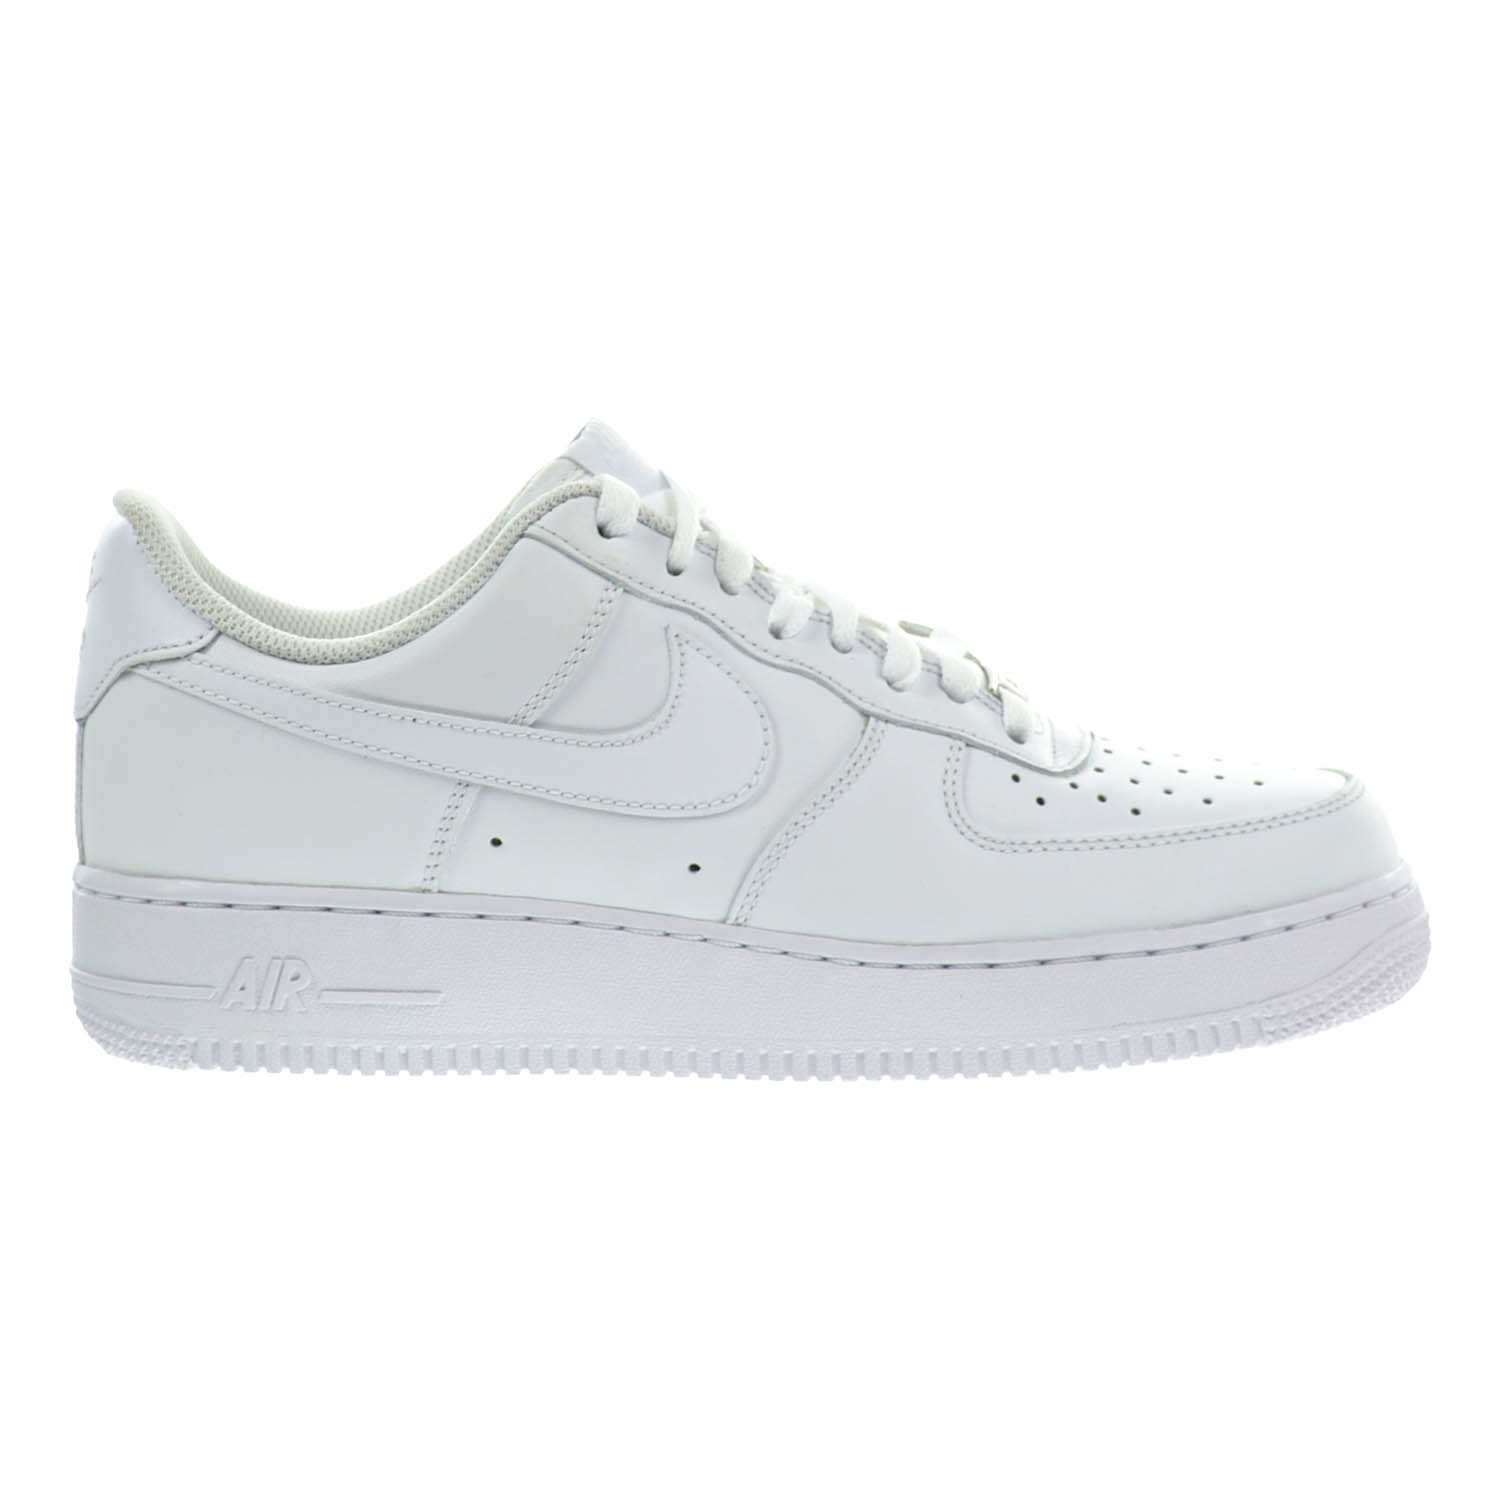 Nike AIR FORCE 1 '07 MENS 315122-111 WHITE / WHITE RETRO ...